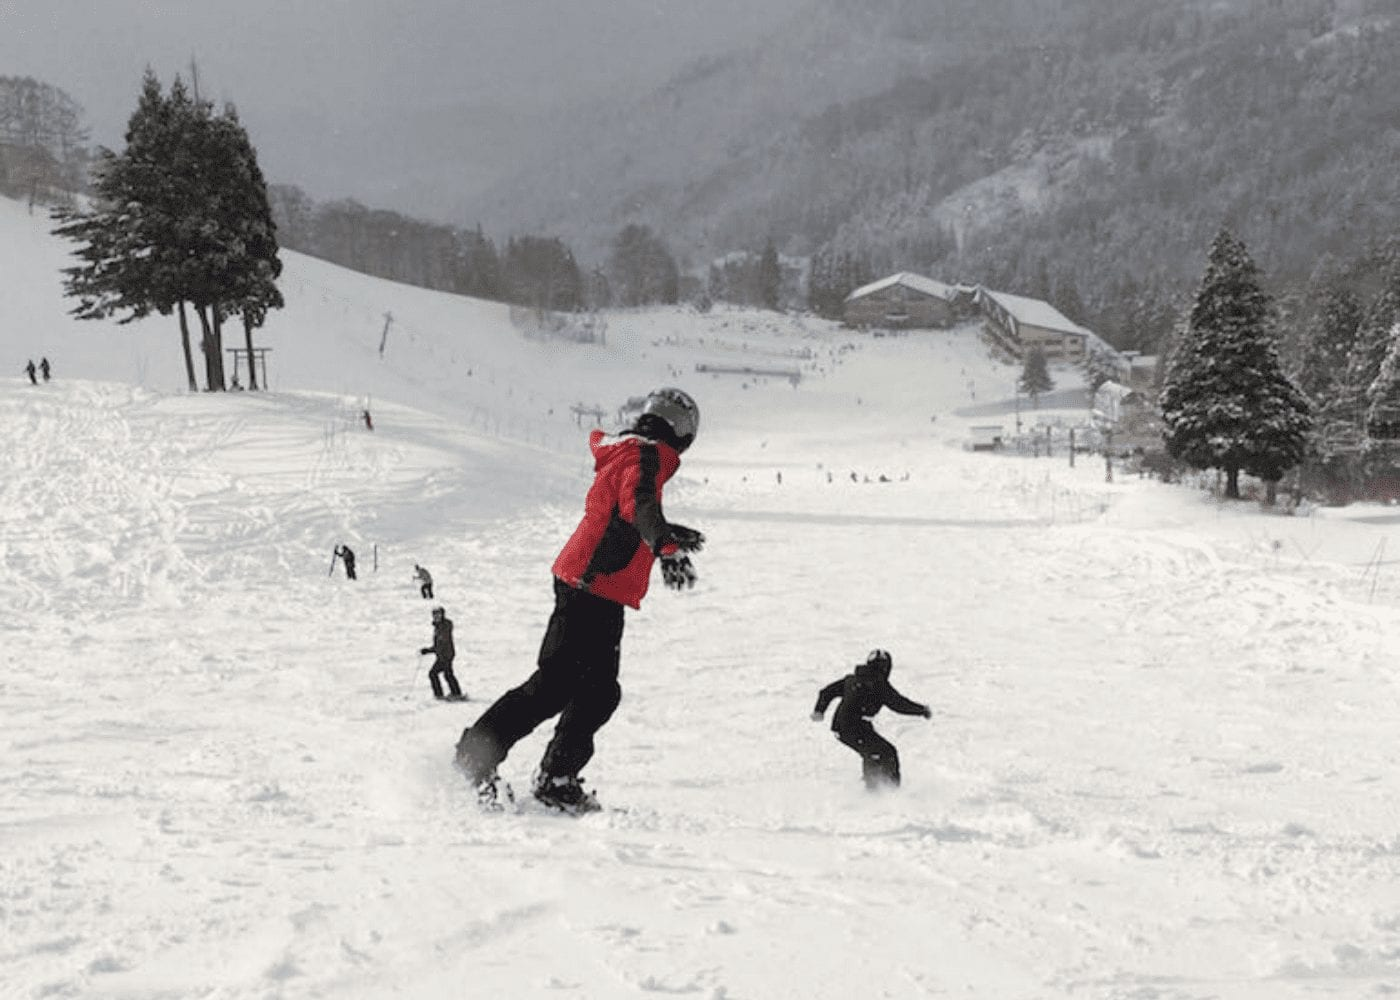 a snowboarder on a slope